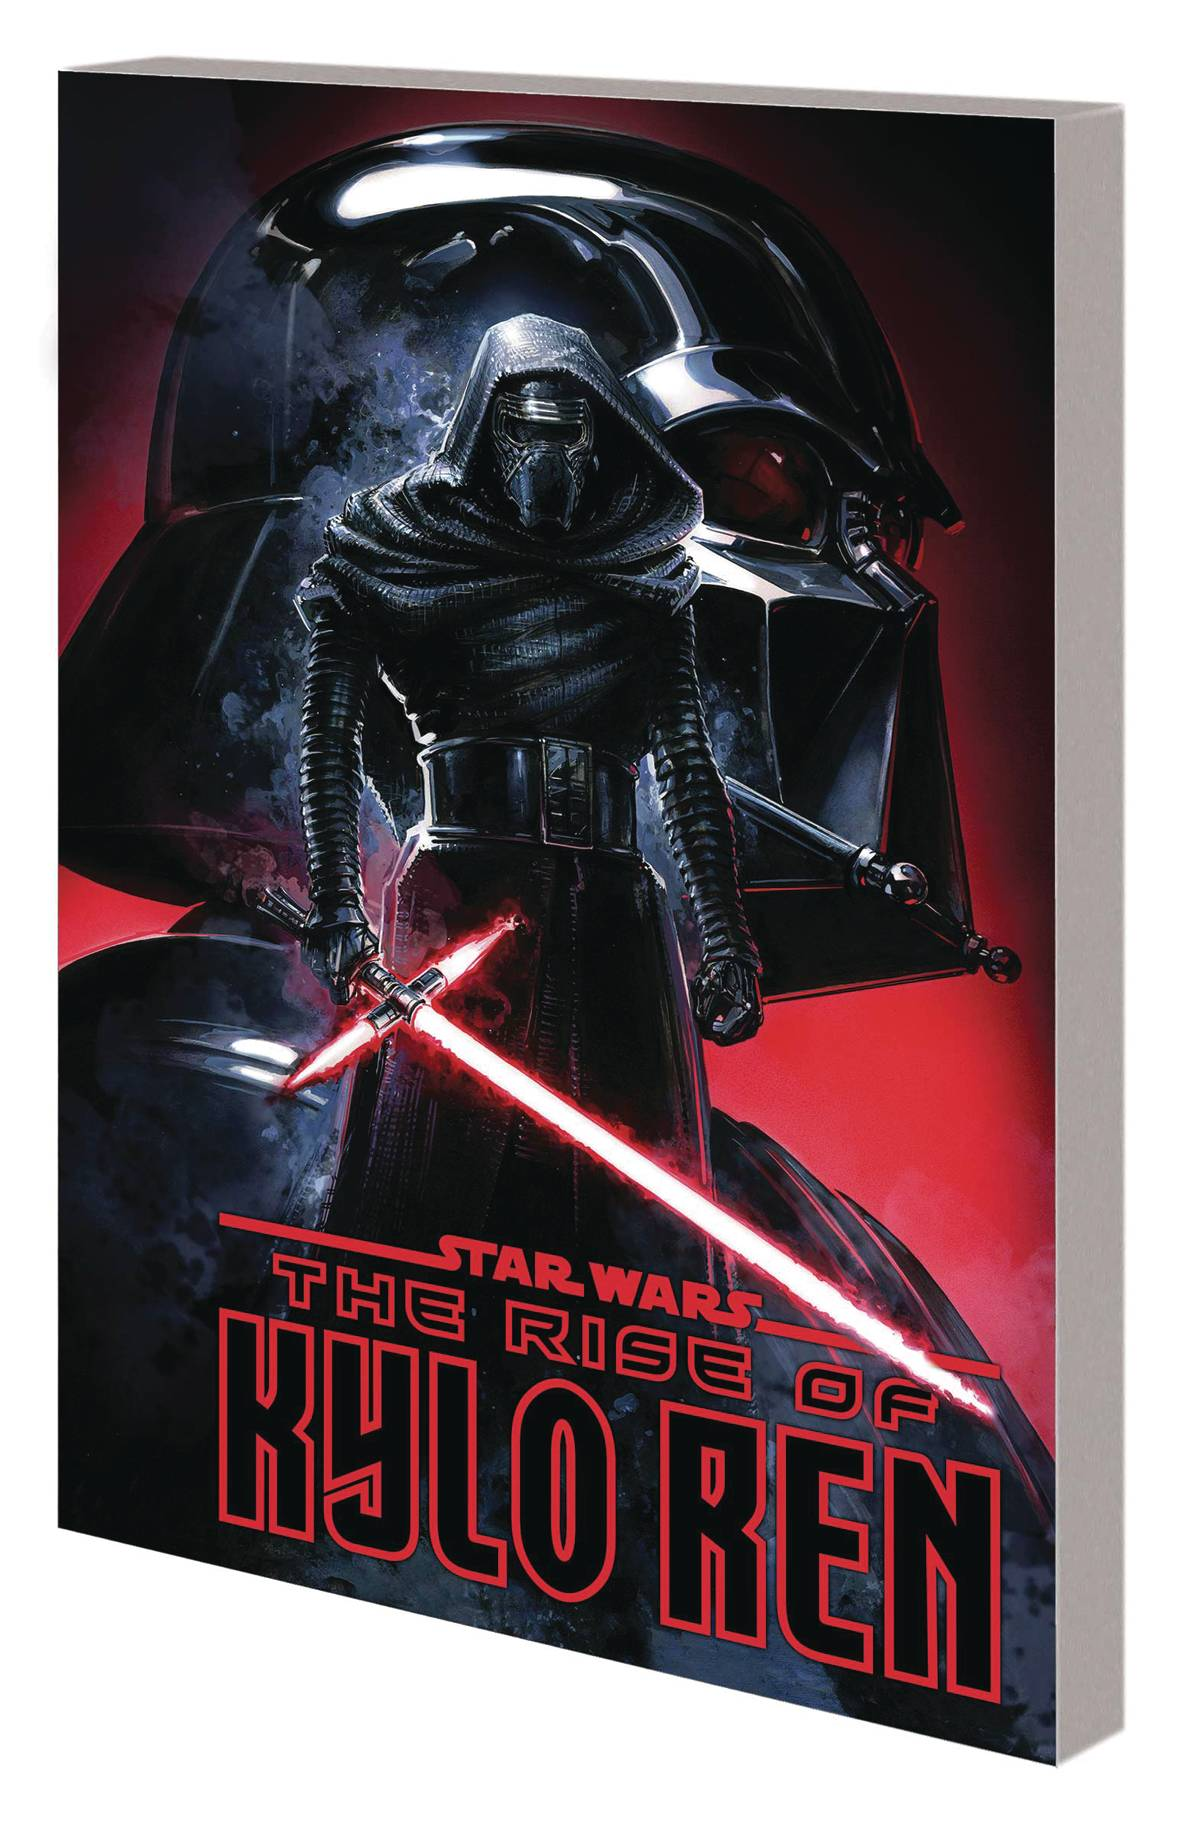 STAR WARS RISE OF KYLO REN TP | Phoenix Comics and Games